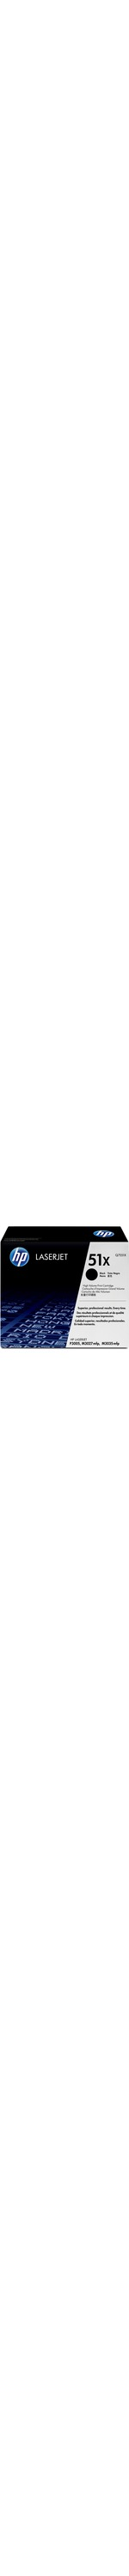 HP 51X Toner Cartridge - Black - Laser - 13000 Page - 1 Each